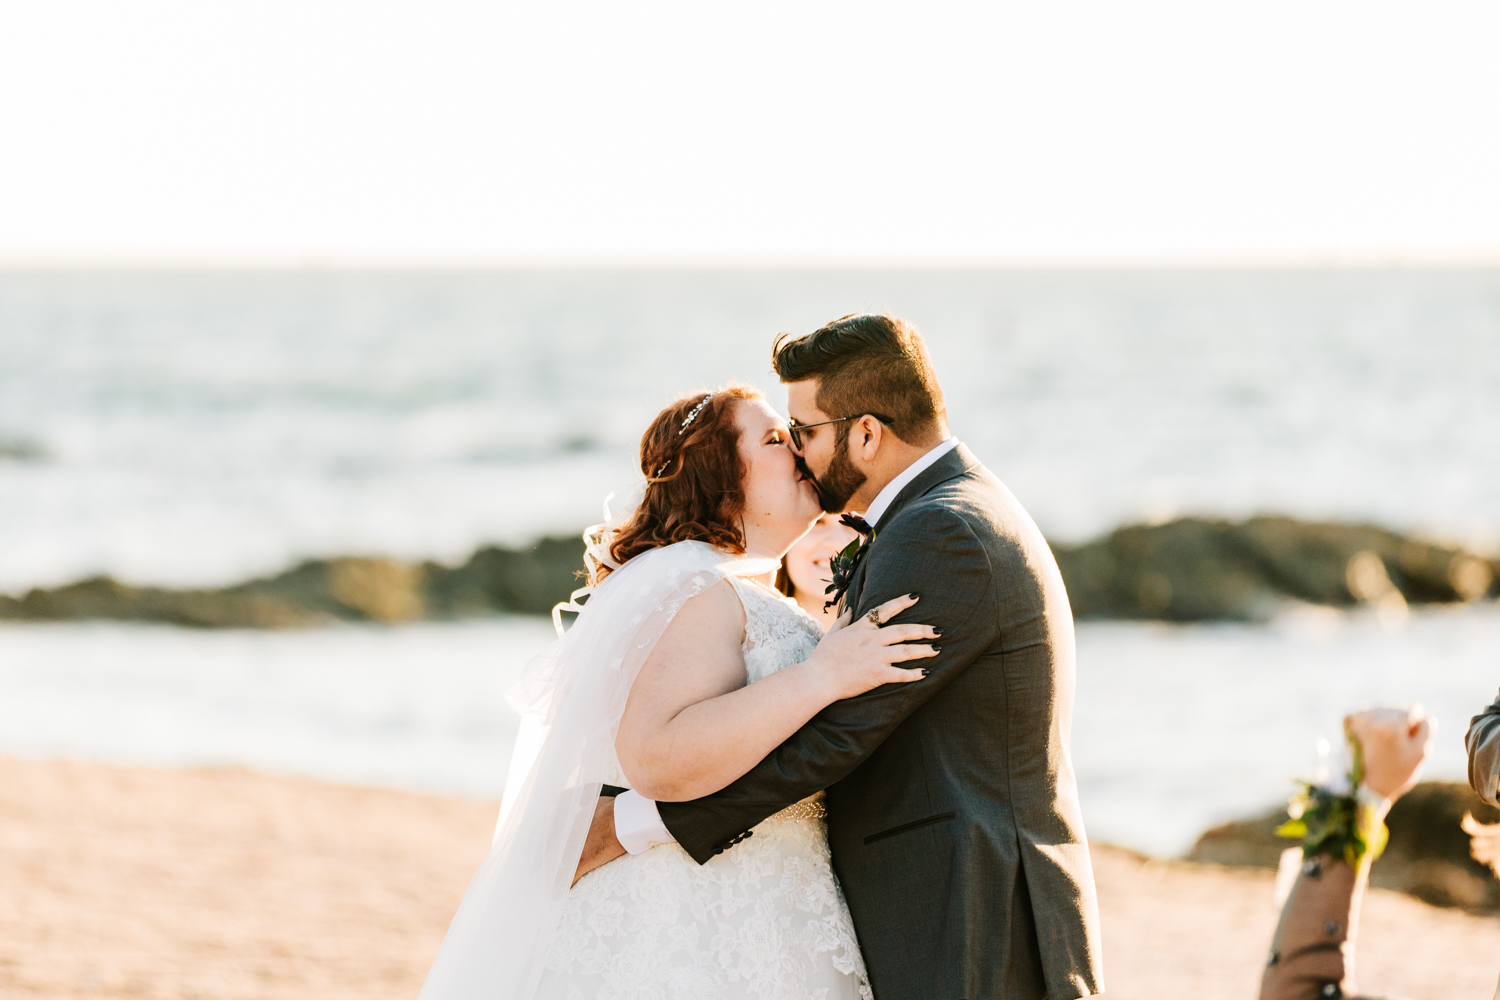 cape wearing bride and groom first kiss on beach wedding ceremony